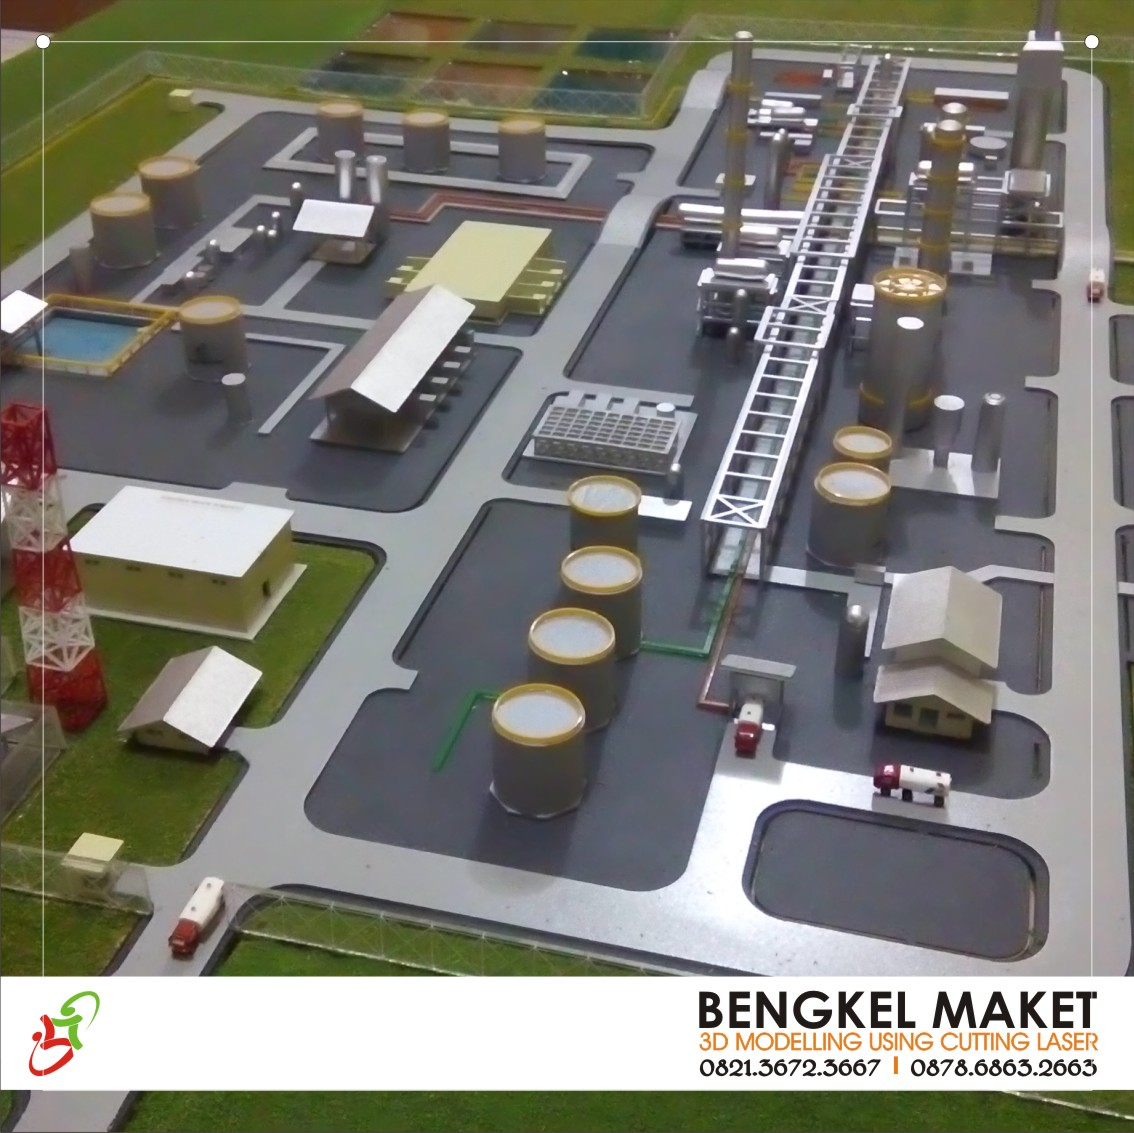 26. maket gas processing plant, CEPU.